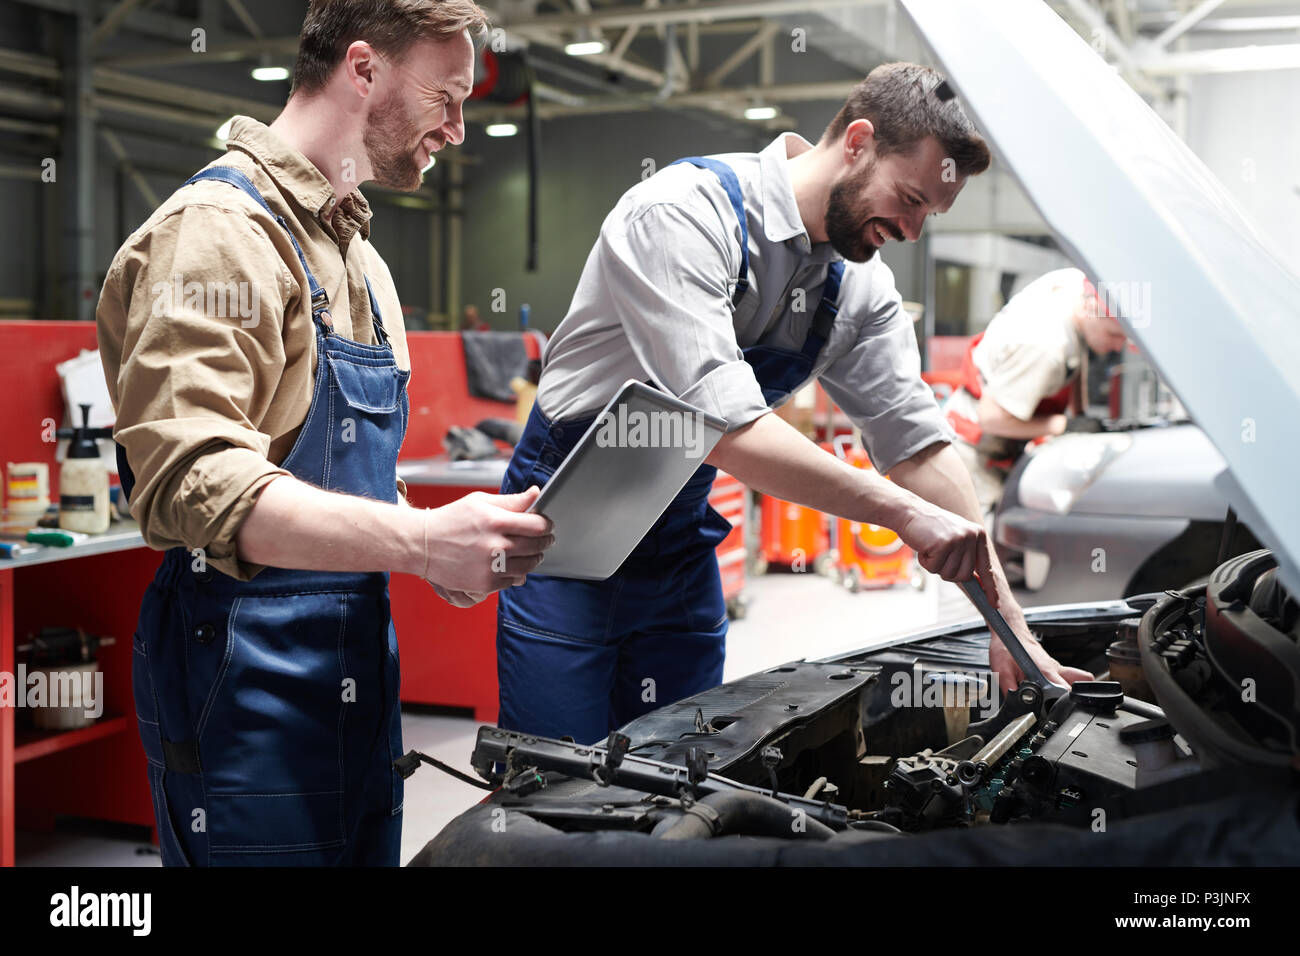 Workers Checking Car in Service - Stock Image